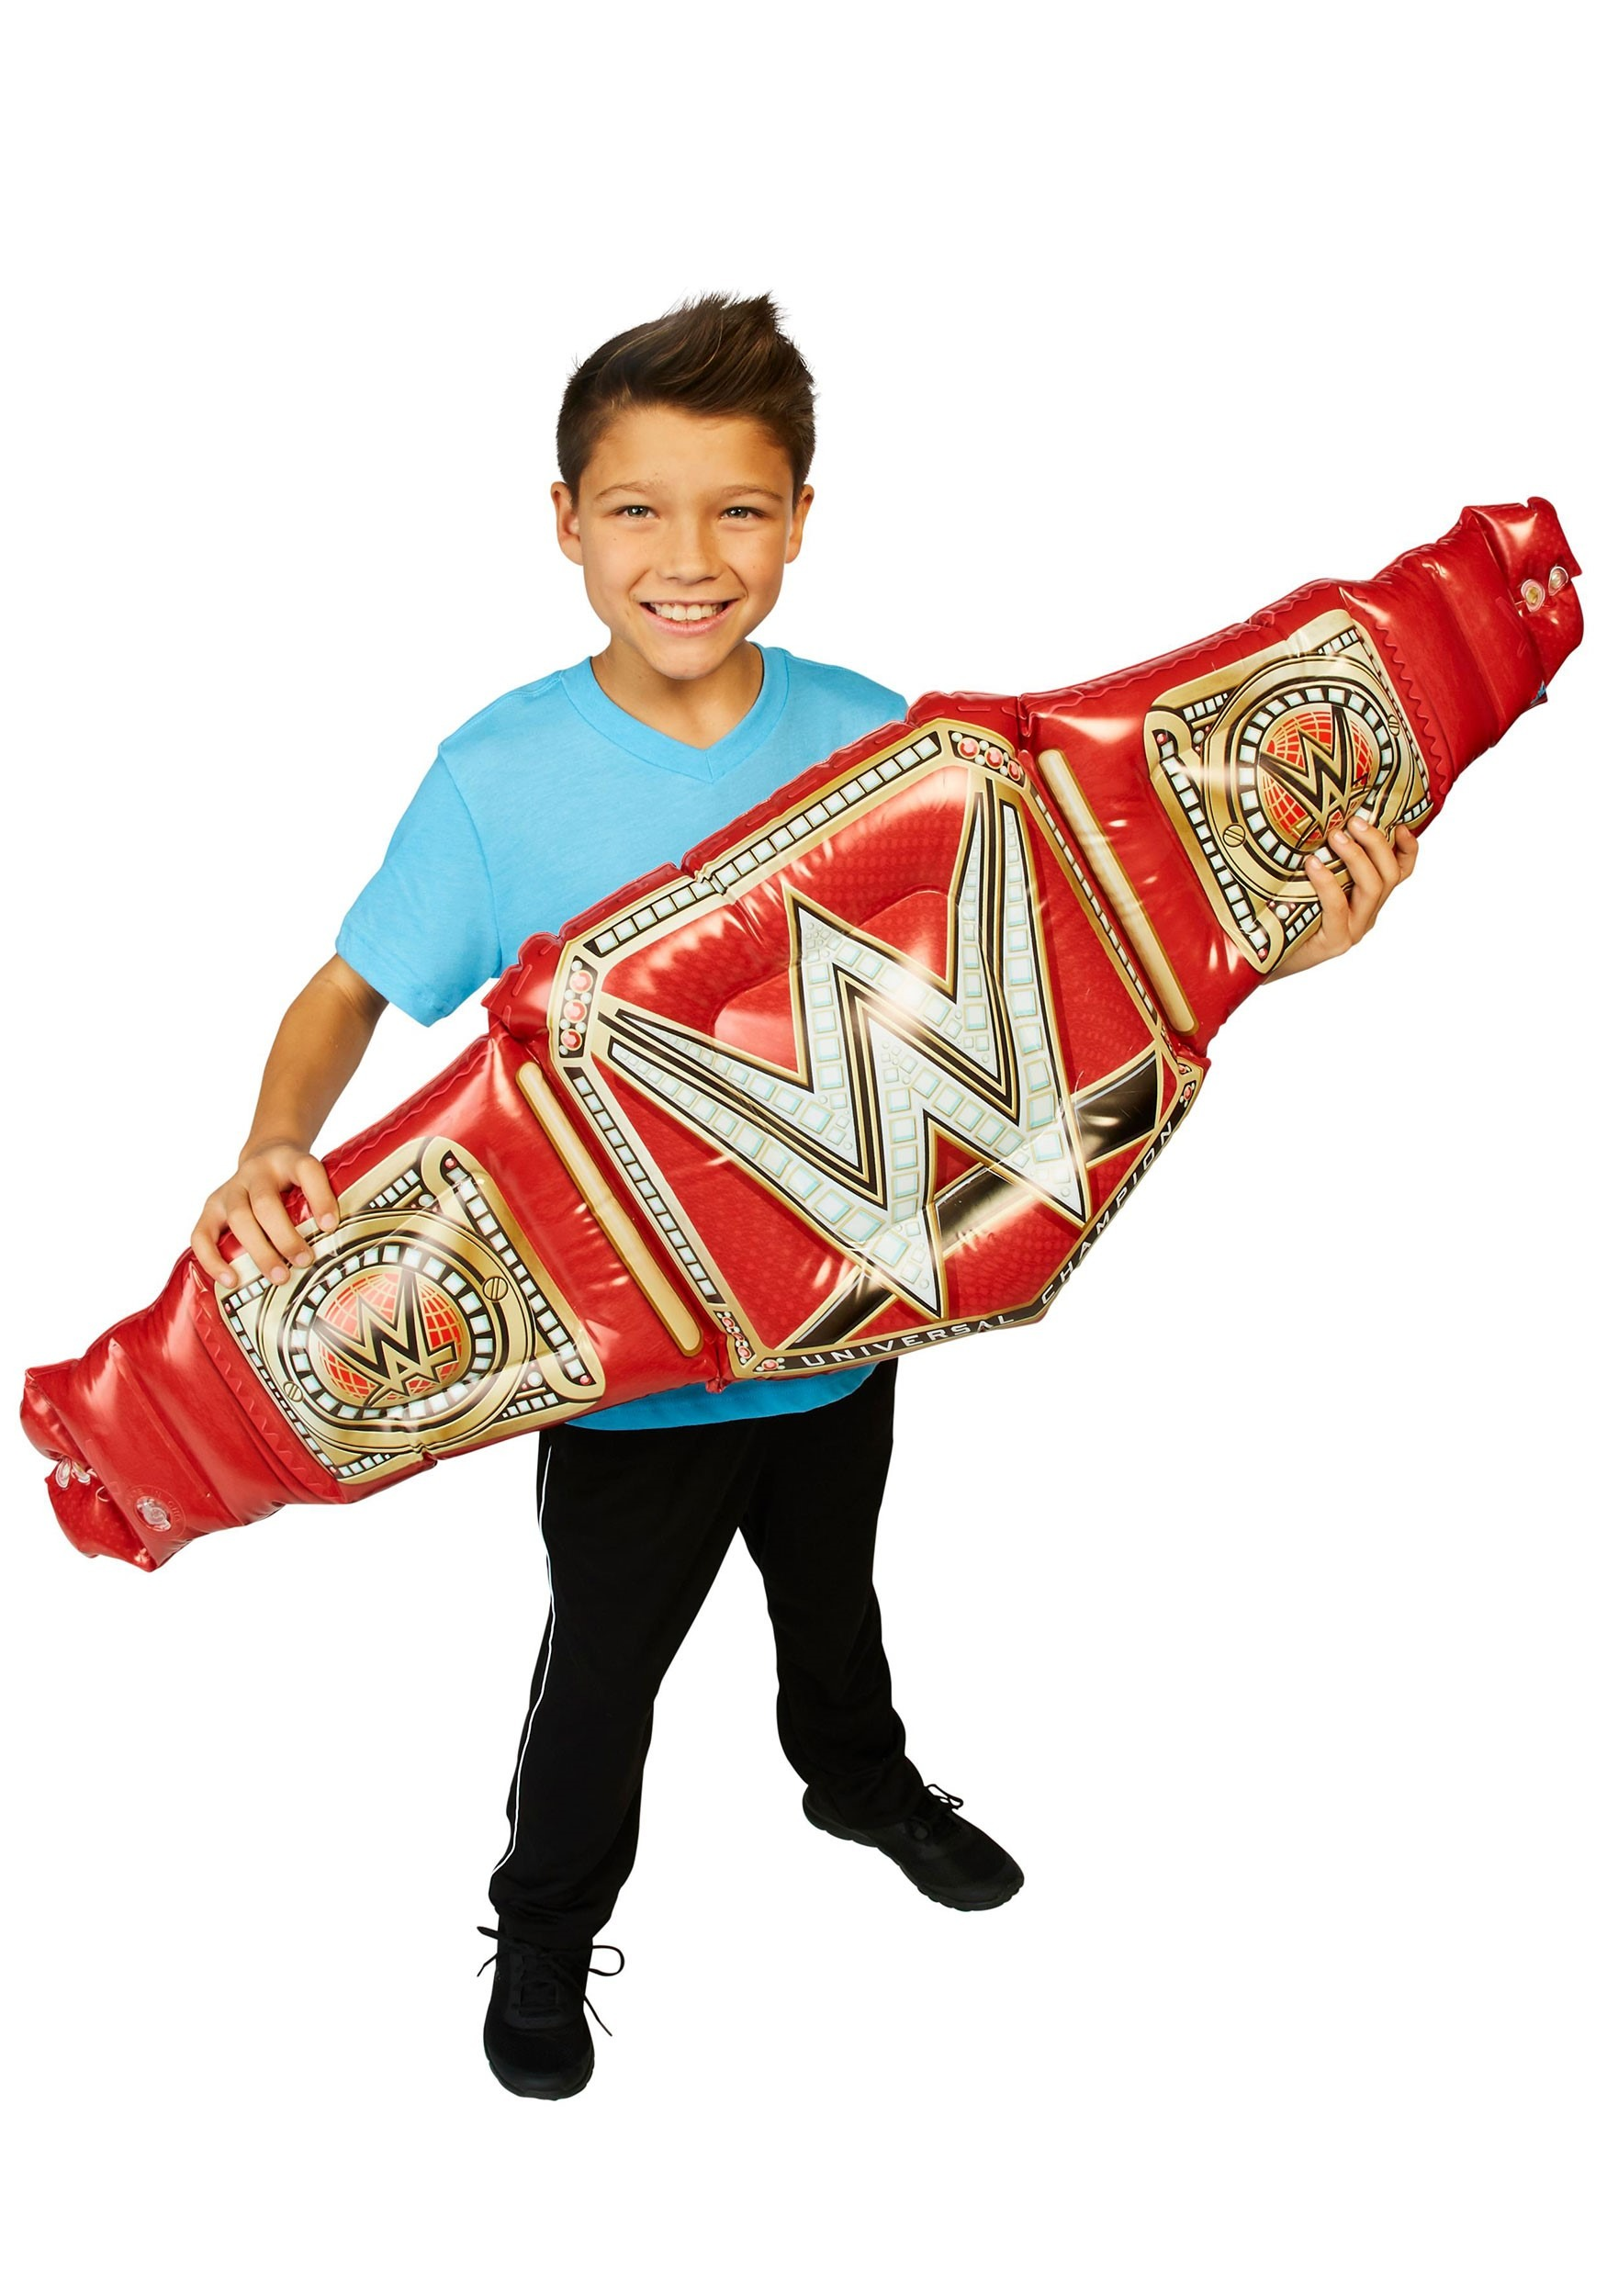 WWE_Airnormous_Large_Universal_Championship_Belt